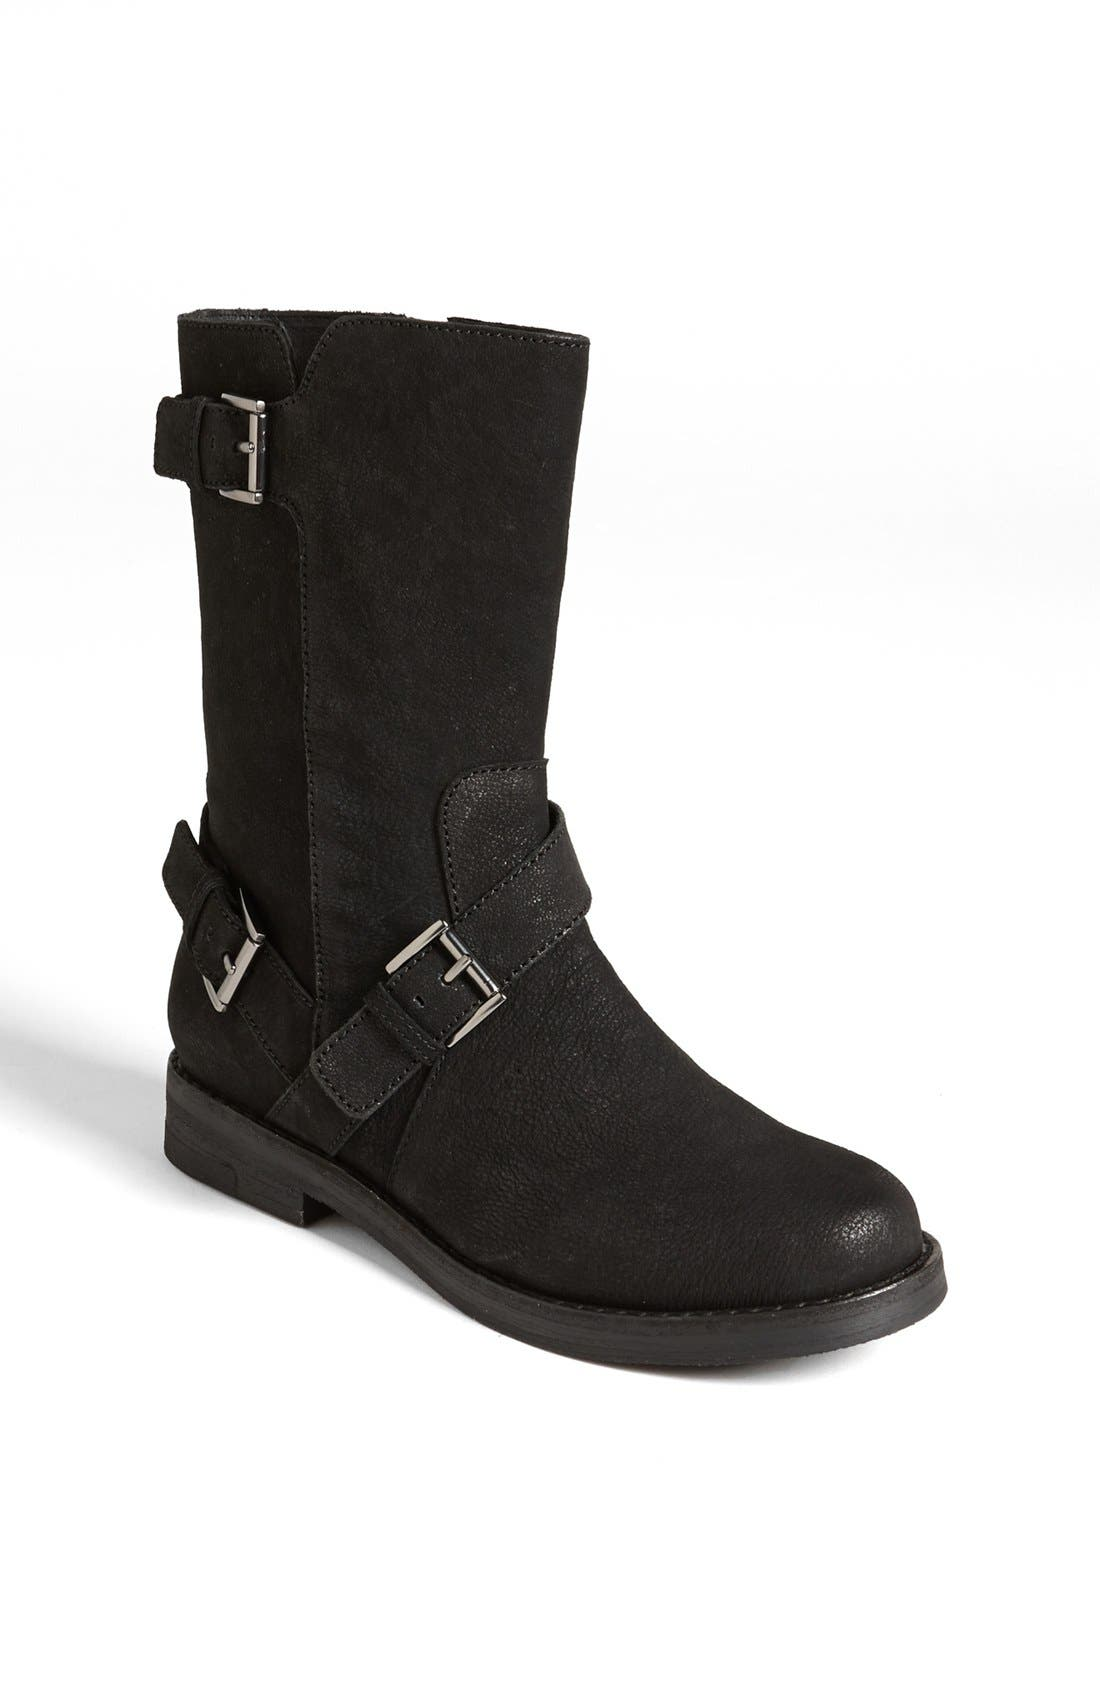 Alternate Image 1 Selected - Eileen Fisher 'Fate' Boot